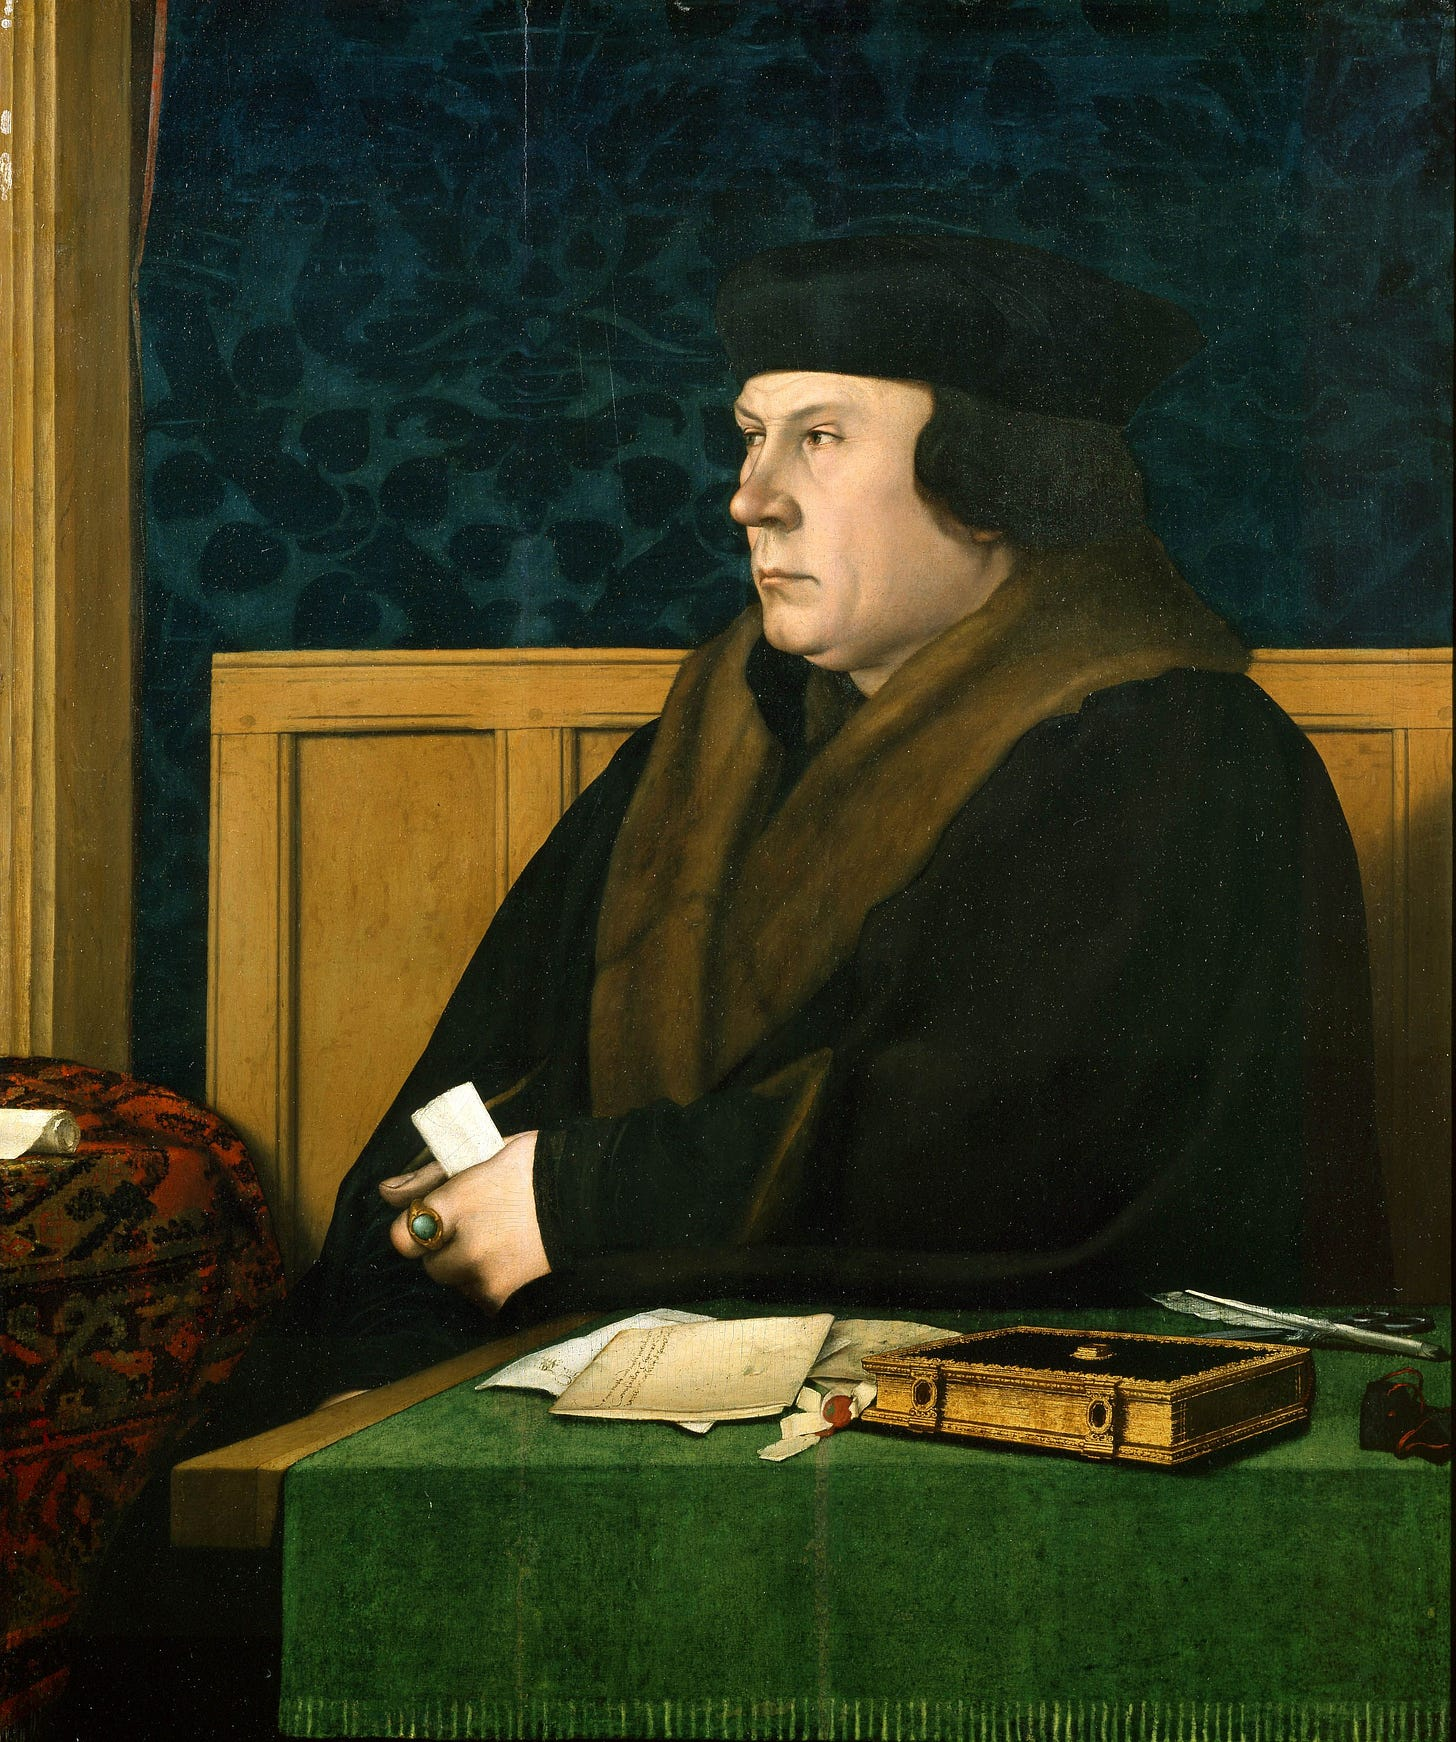 Thomas Cromwell - Wikipedia